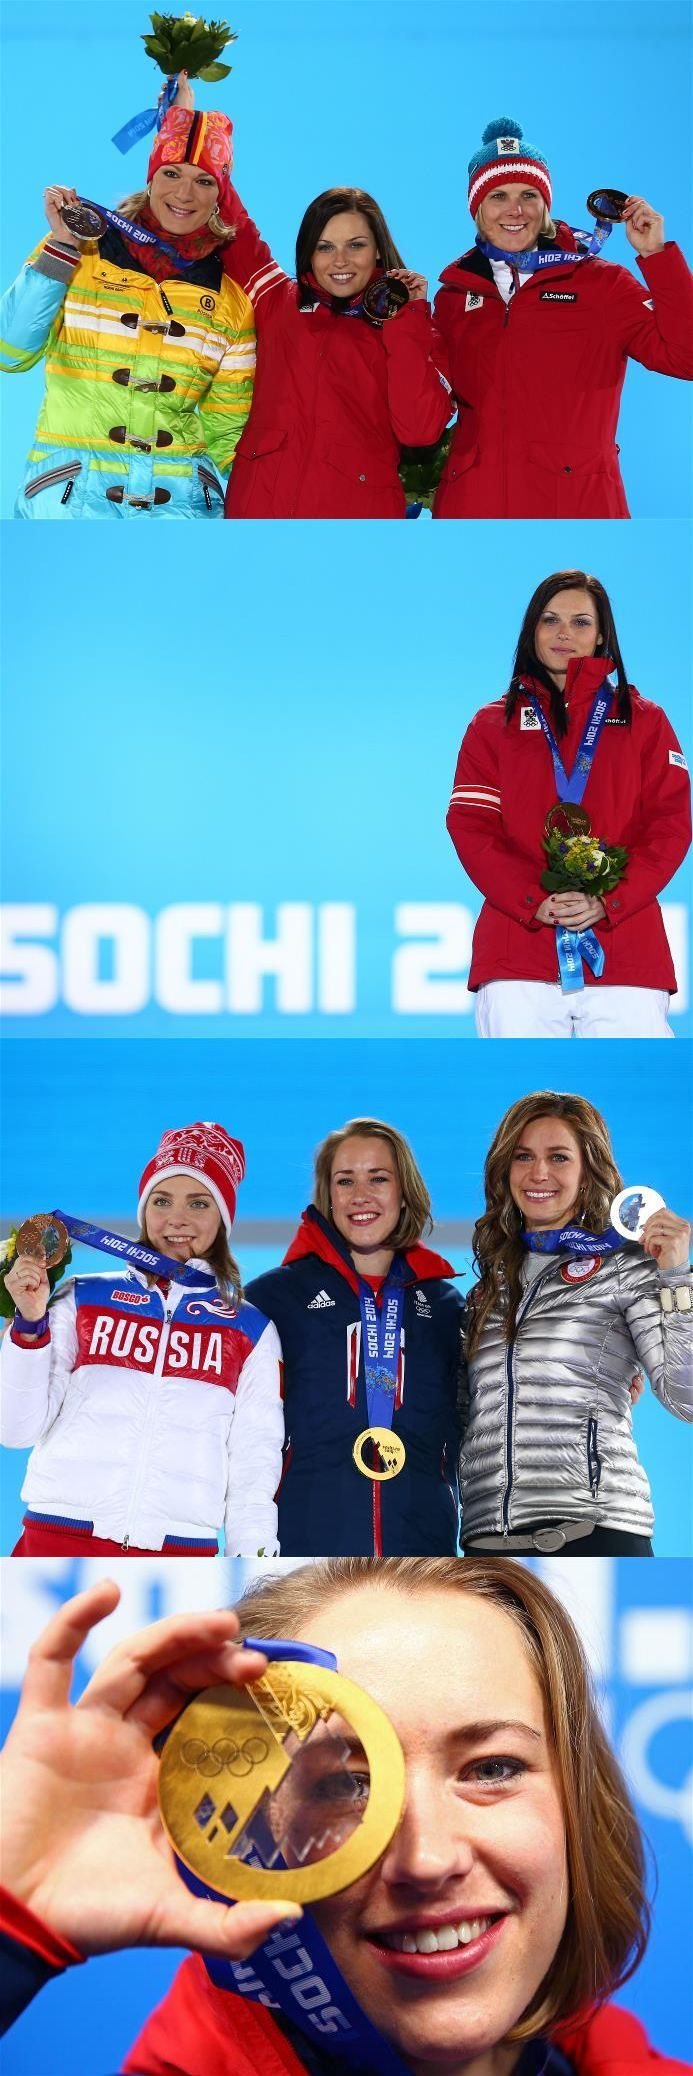 Sochi 2014 Day 9 / Medal Ceremony/ Silver medalist Maria Hoefl-Riesch of Germany, gold medalist Anna Fenninger of Austria and bronze medalist Nicole Hosp of Austria on the podium during the medal ceremony for the Alpine Skiing Ladies Super-G, Bronze medalist Elena Nikitina (L) of Russia, gold medalist Lizzy Yarnold (C) of Great Britain and Silver medalist Noelle Pikus-Pace (R) of the United States celebrates on the podium during the medal ceremony for the Women's Skelton